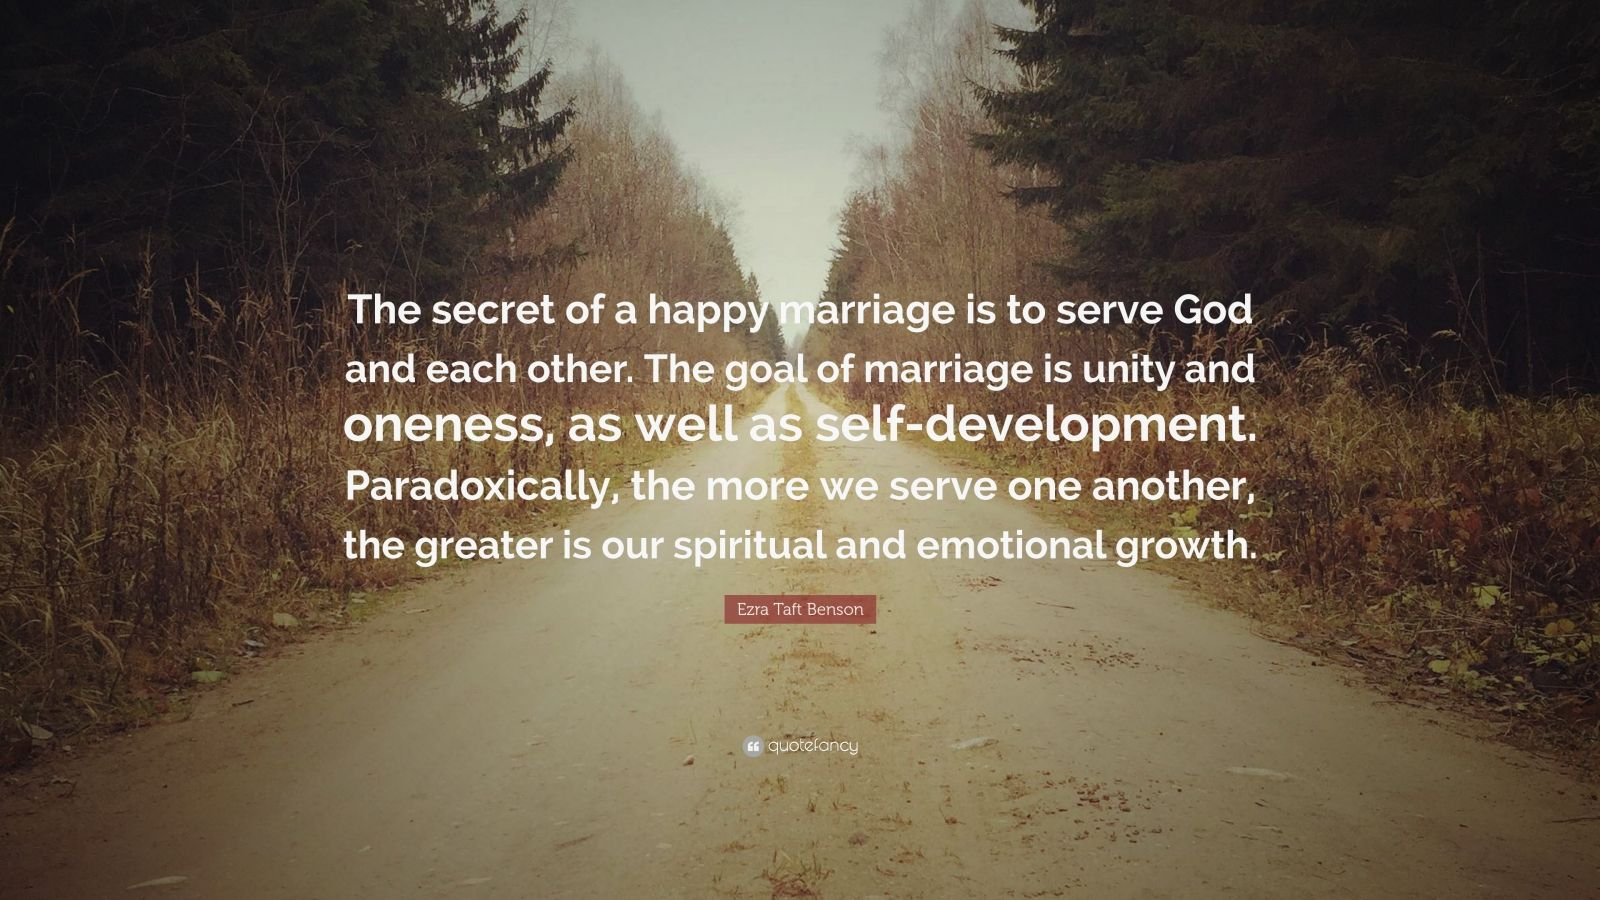 """Ezra Taft Benson Quote: """"The secret of a happy marriage is to serve God and each other. The goal of marriage is unity and oneness, as well as self-development. Paradoxically, the more we serve one another, the greater is our spiritual and emotional growth."""""""